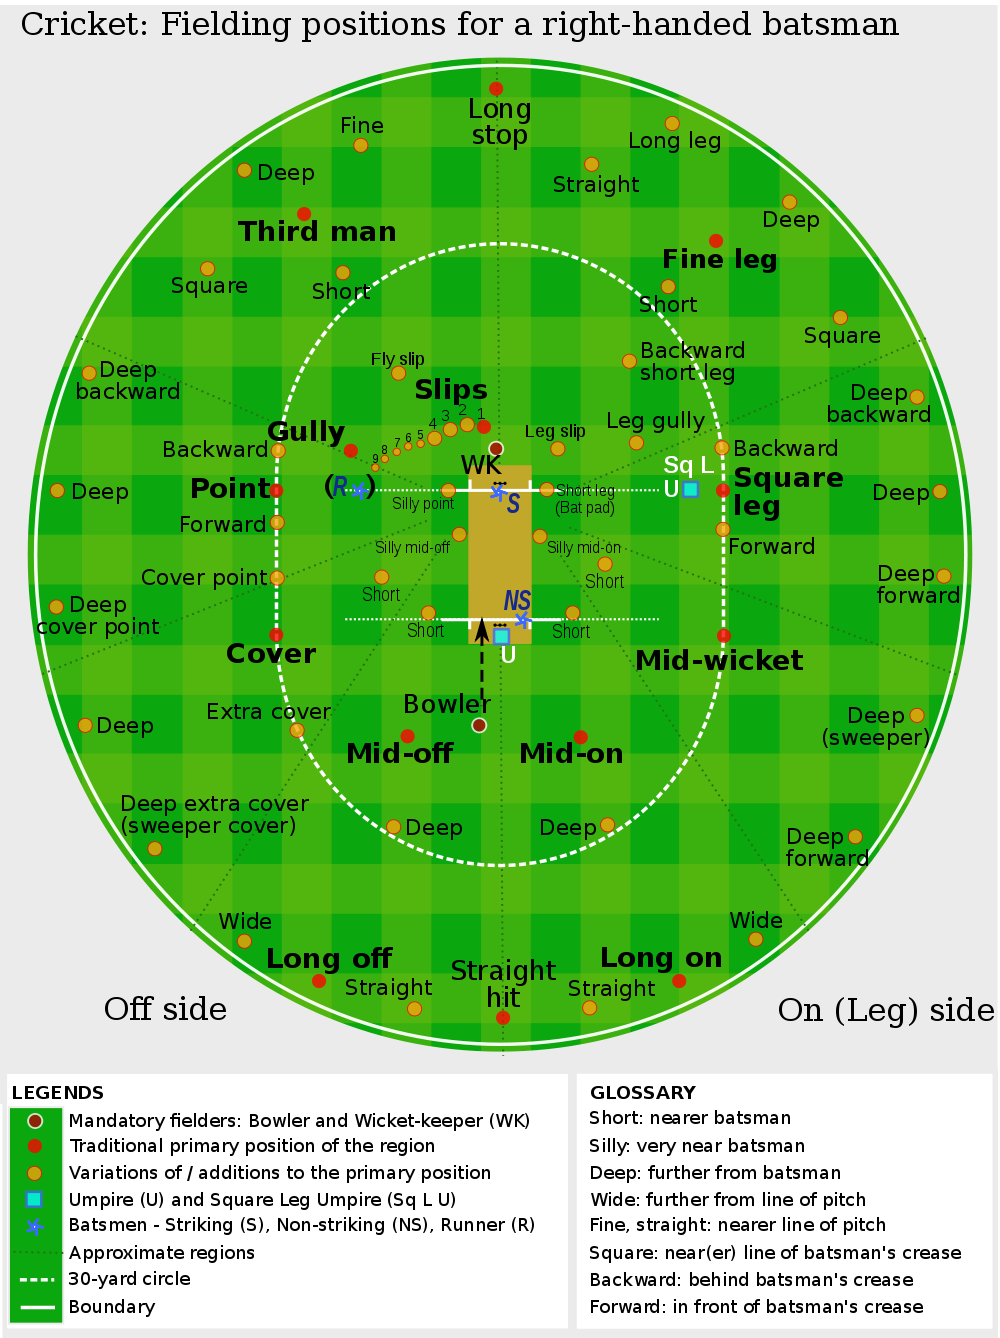 Cricket Fielding positions for a righthanded batsman